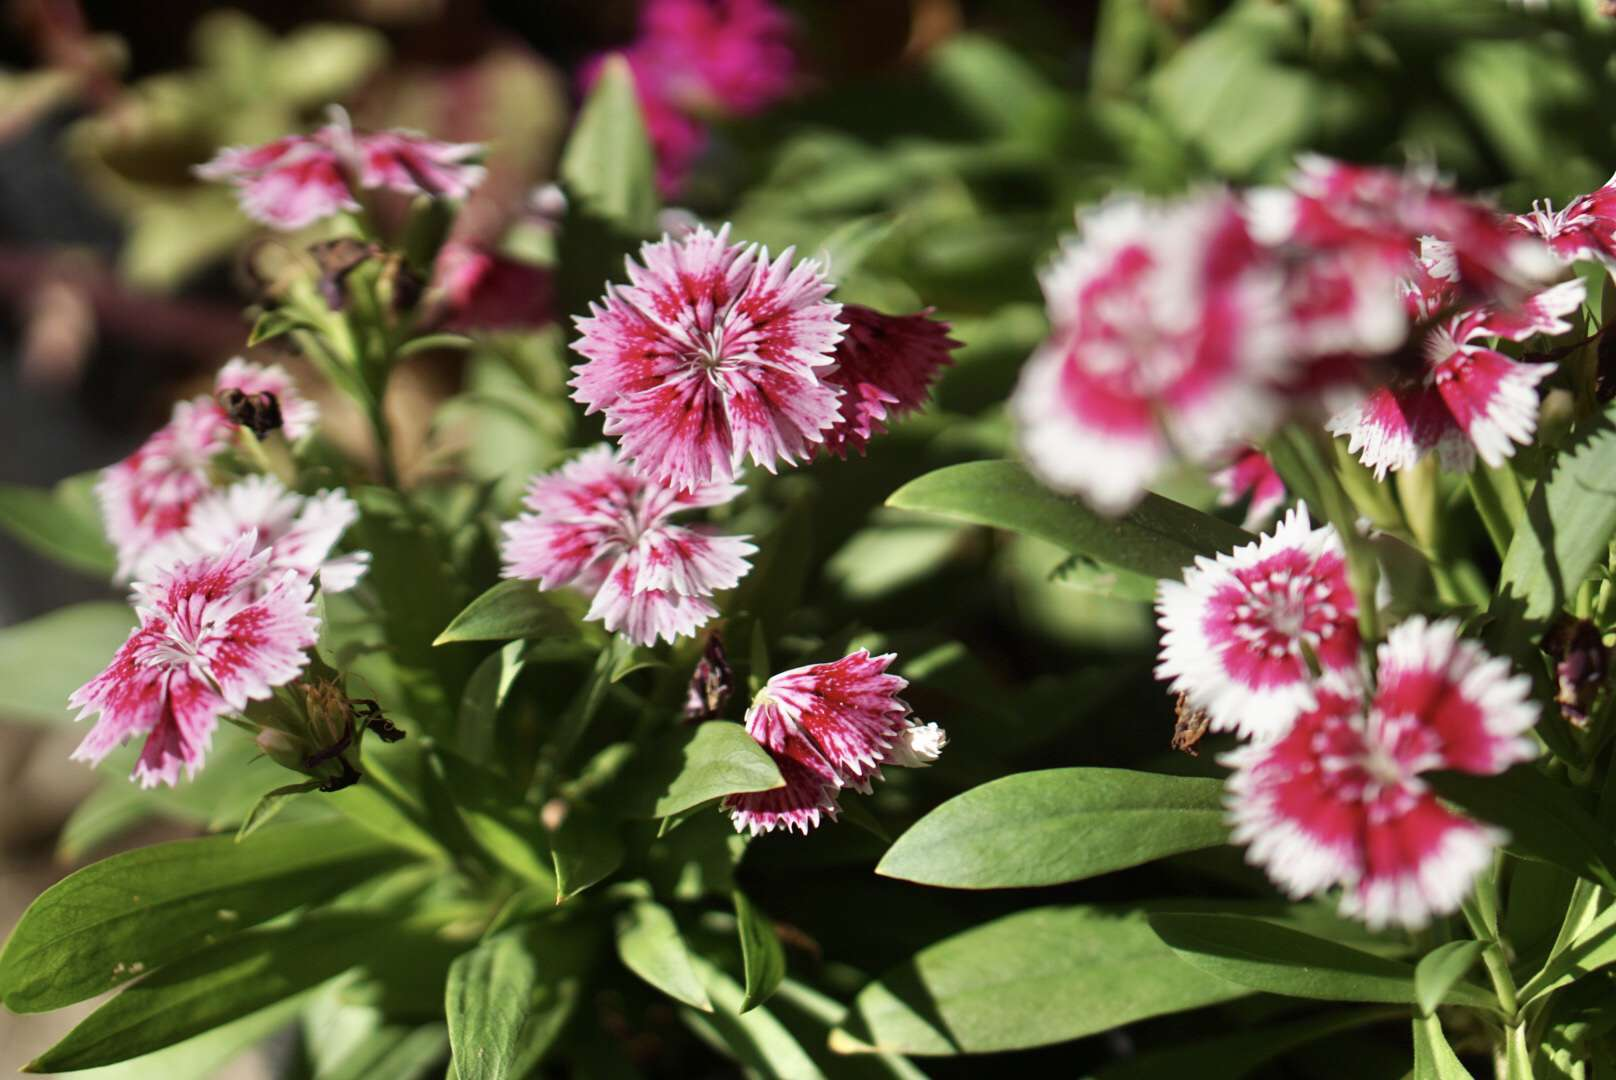 Sweet Williams plant with circular and frilly pink and white flowers in sunlight